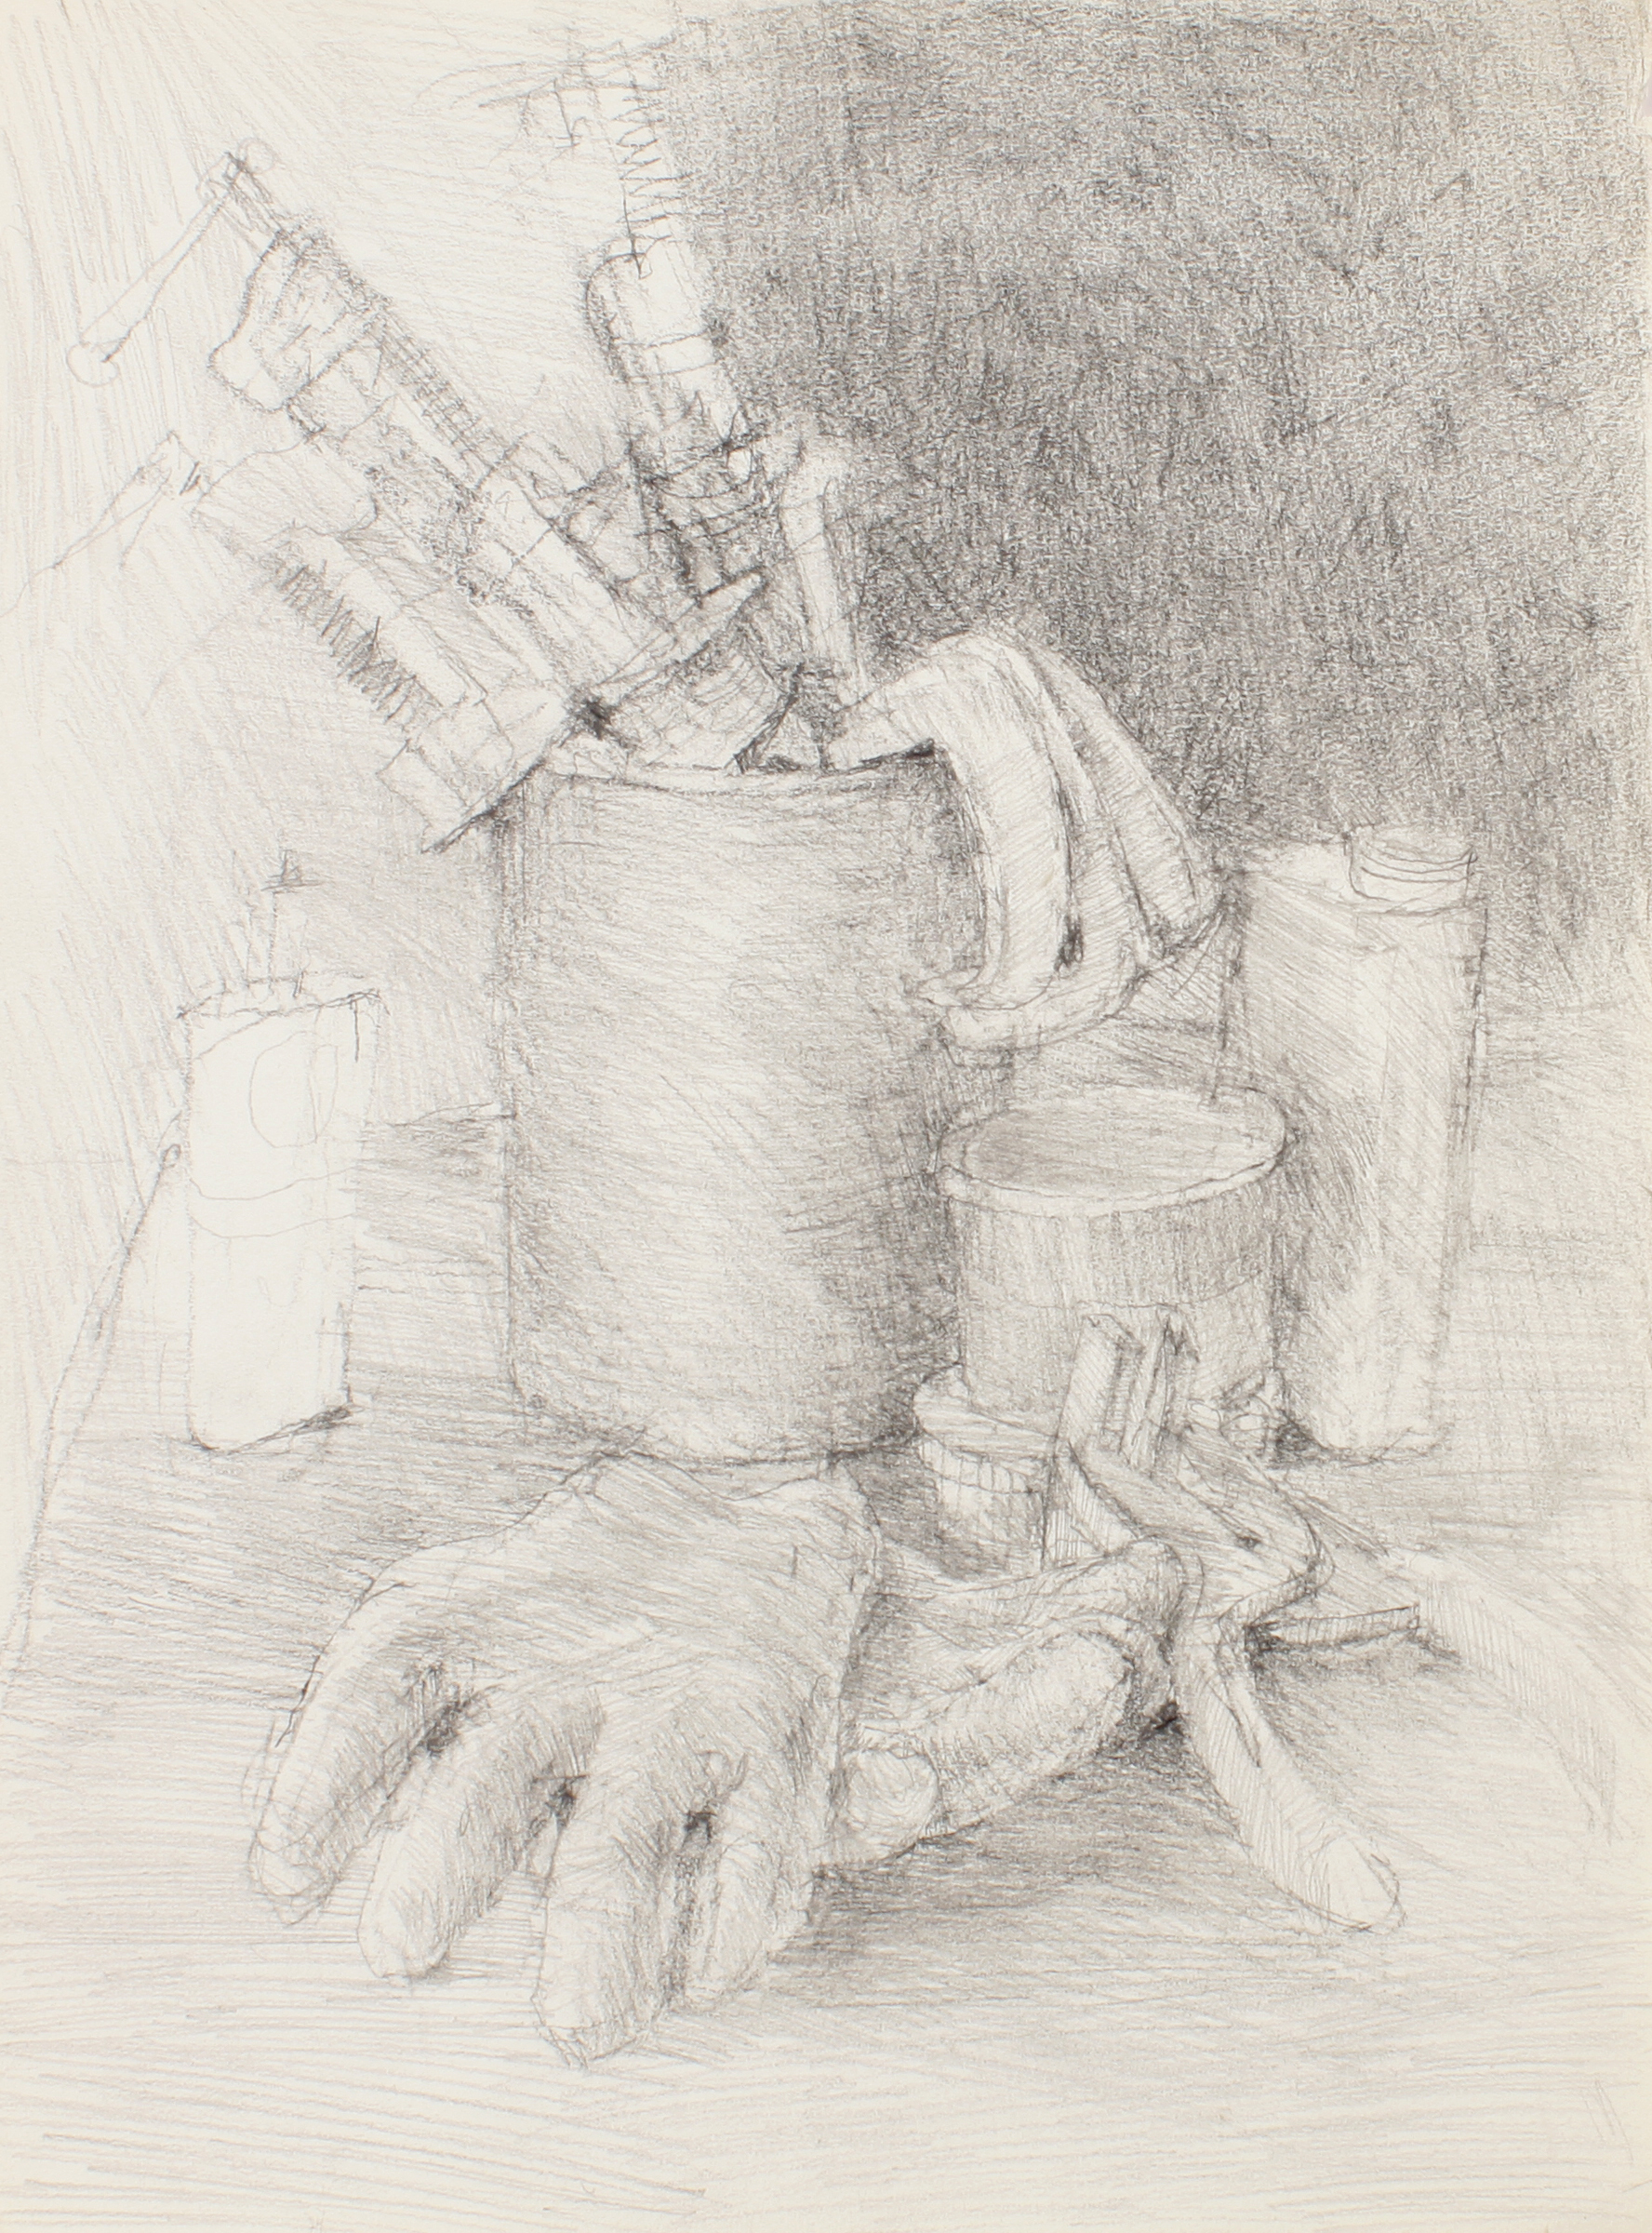 1990s_Tools_and_Gloves_pencil_on_paper_15x11in_WPF093.jpg